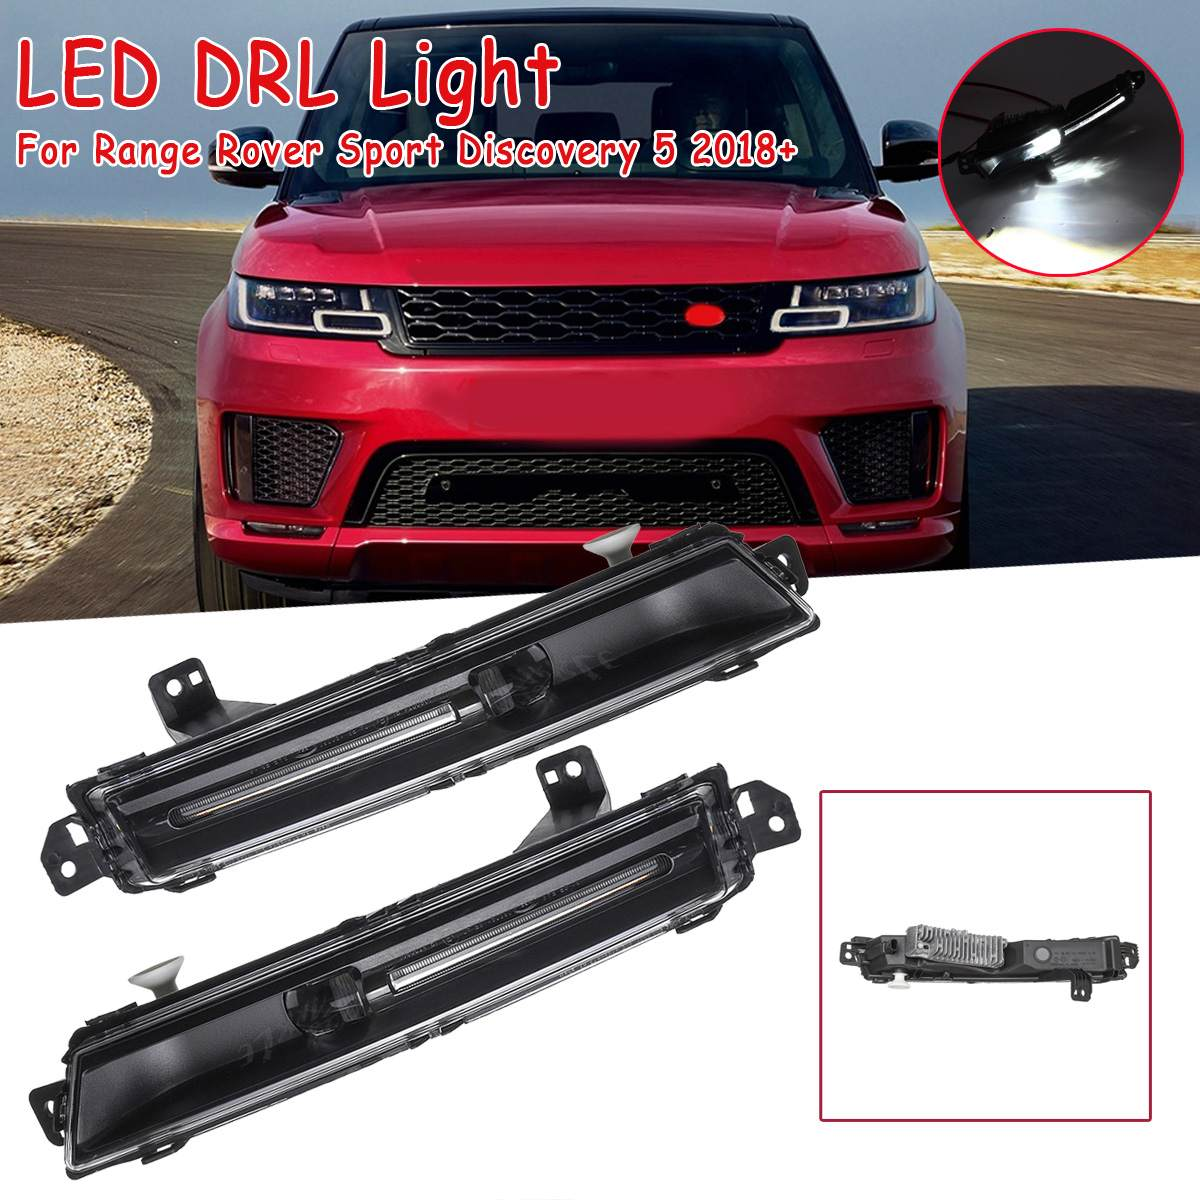 US $96 91 37% OFF 12V Left/Right Car Front Bumper LED DRL Fog Lights Lamp  Replacement For Range Rover Sport Discovery 5 2018+ LR098343/LR098340-in  Car